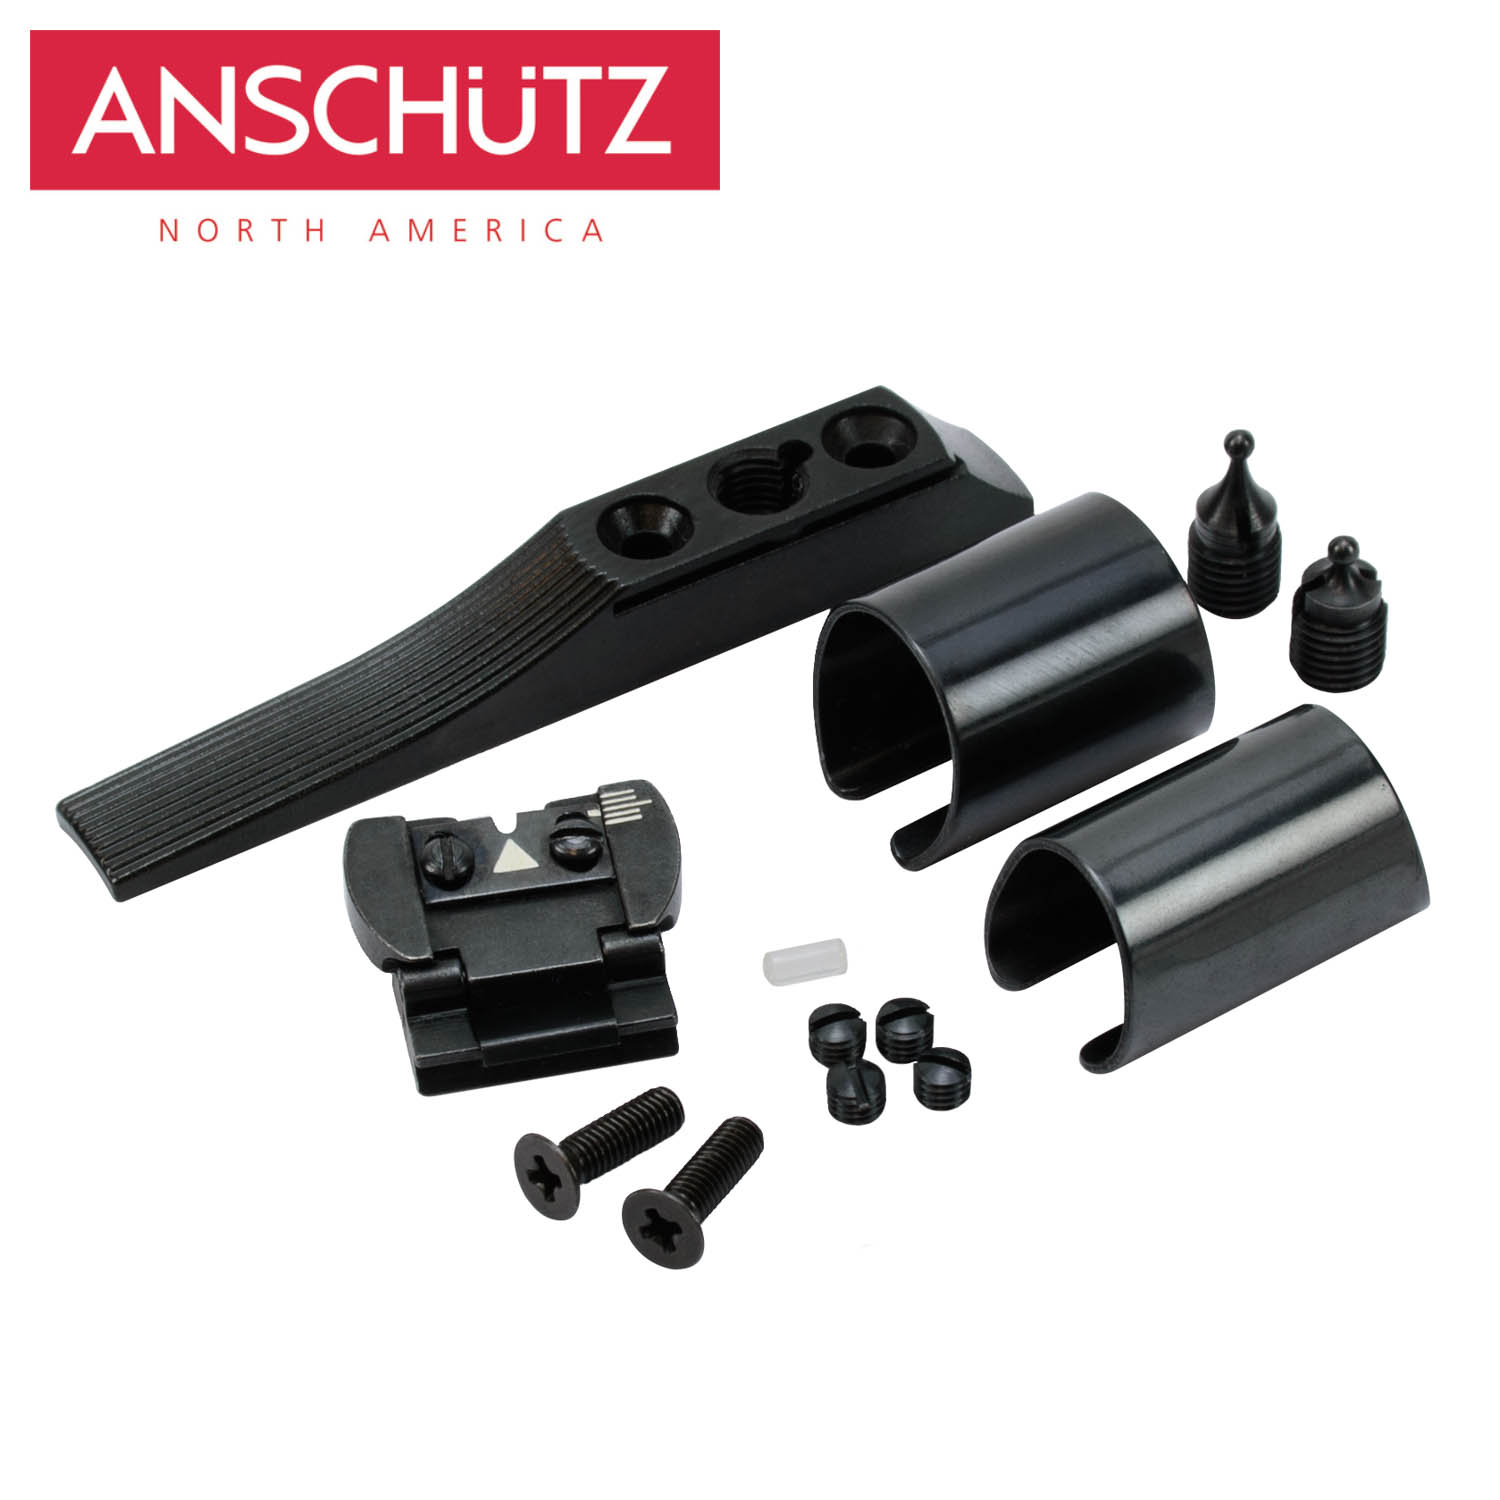 Anschutz Sight Set Kit, Sporters  22LR: Midwest Gun Works